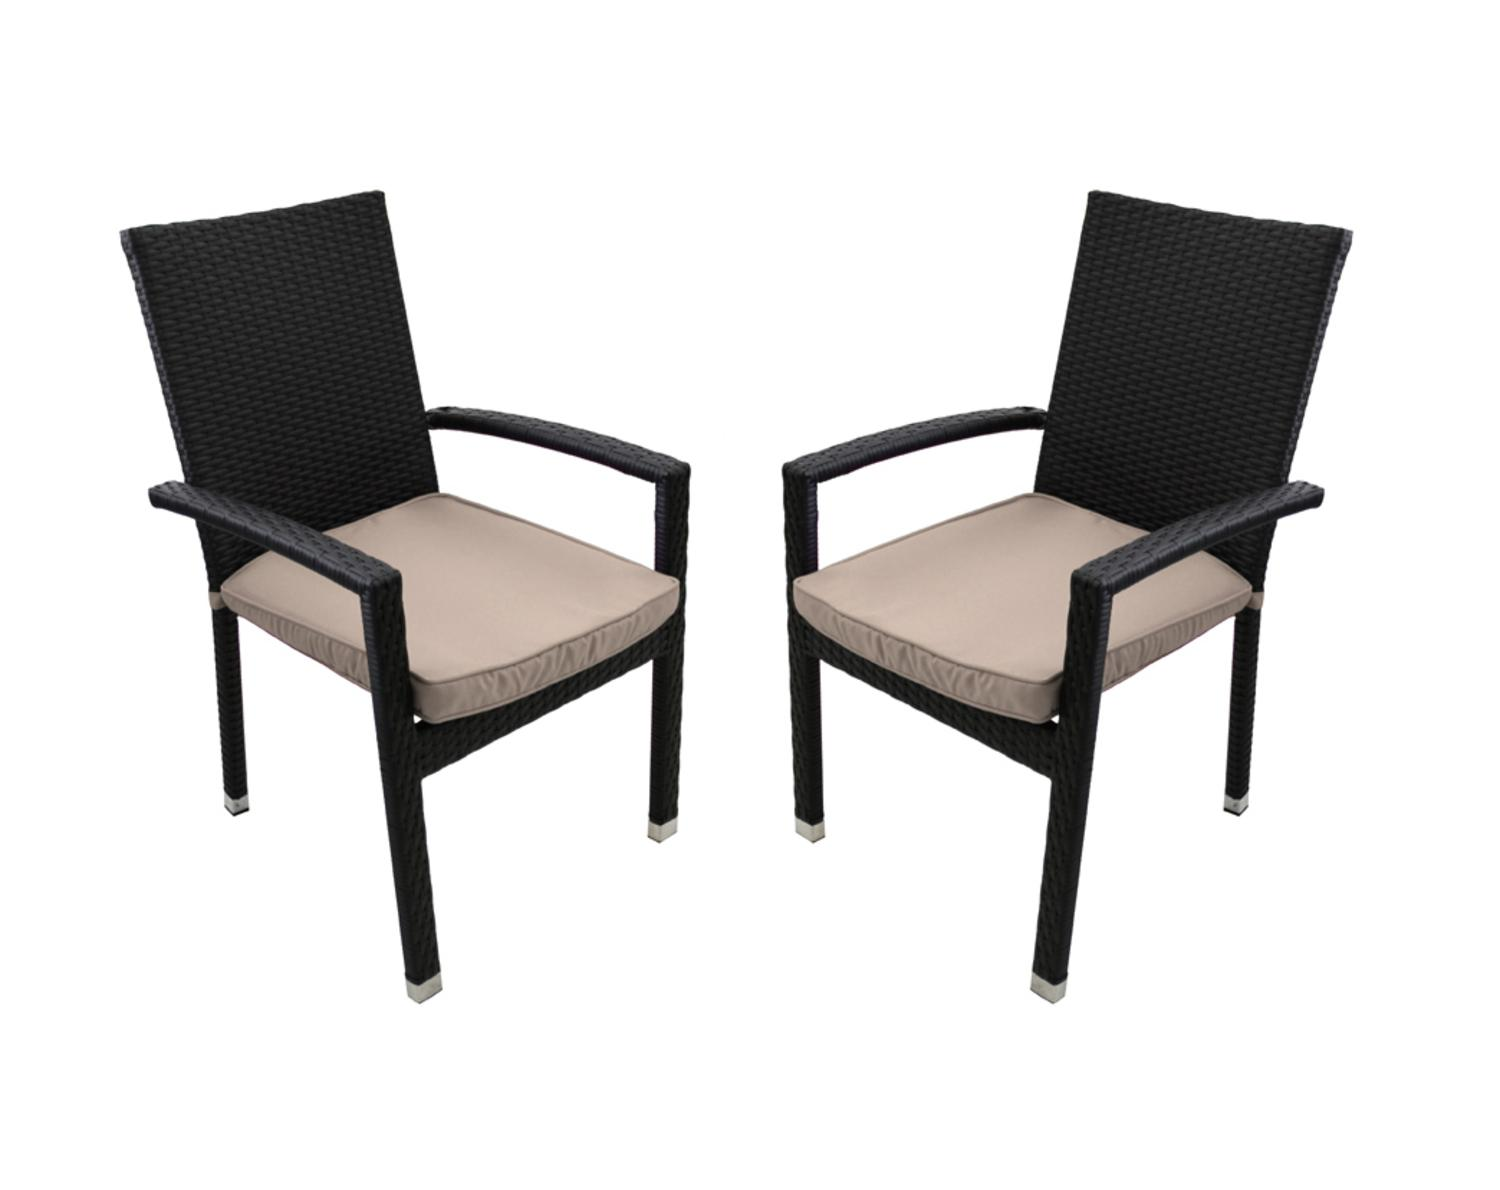 Set-of-2-Black-Resin-Wicker-Outdoor-Patio-Furniture-Dining